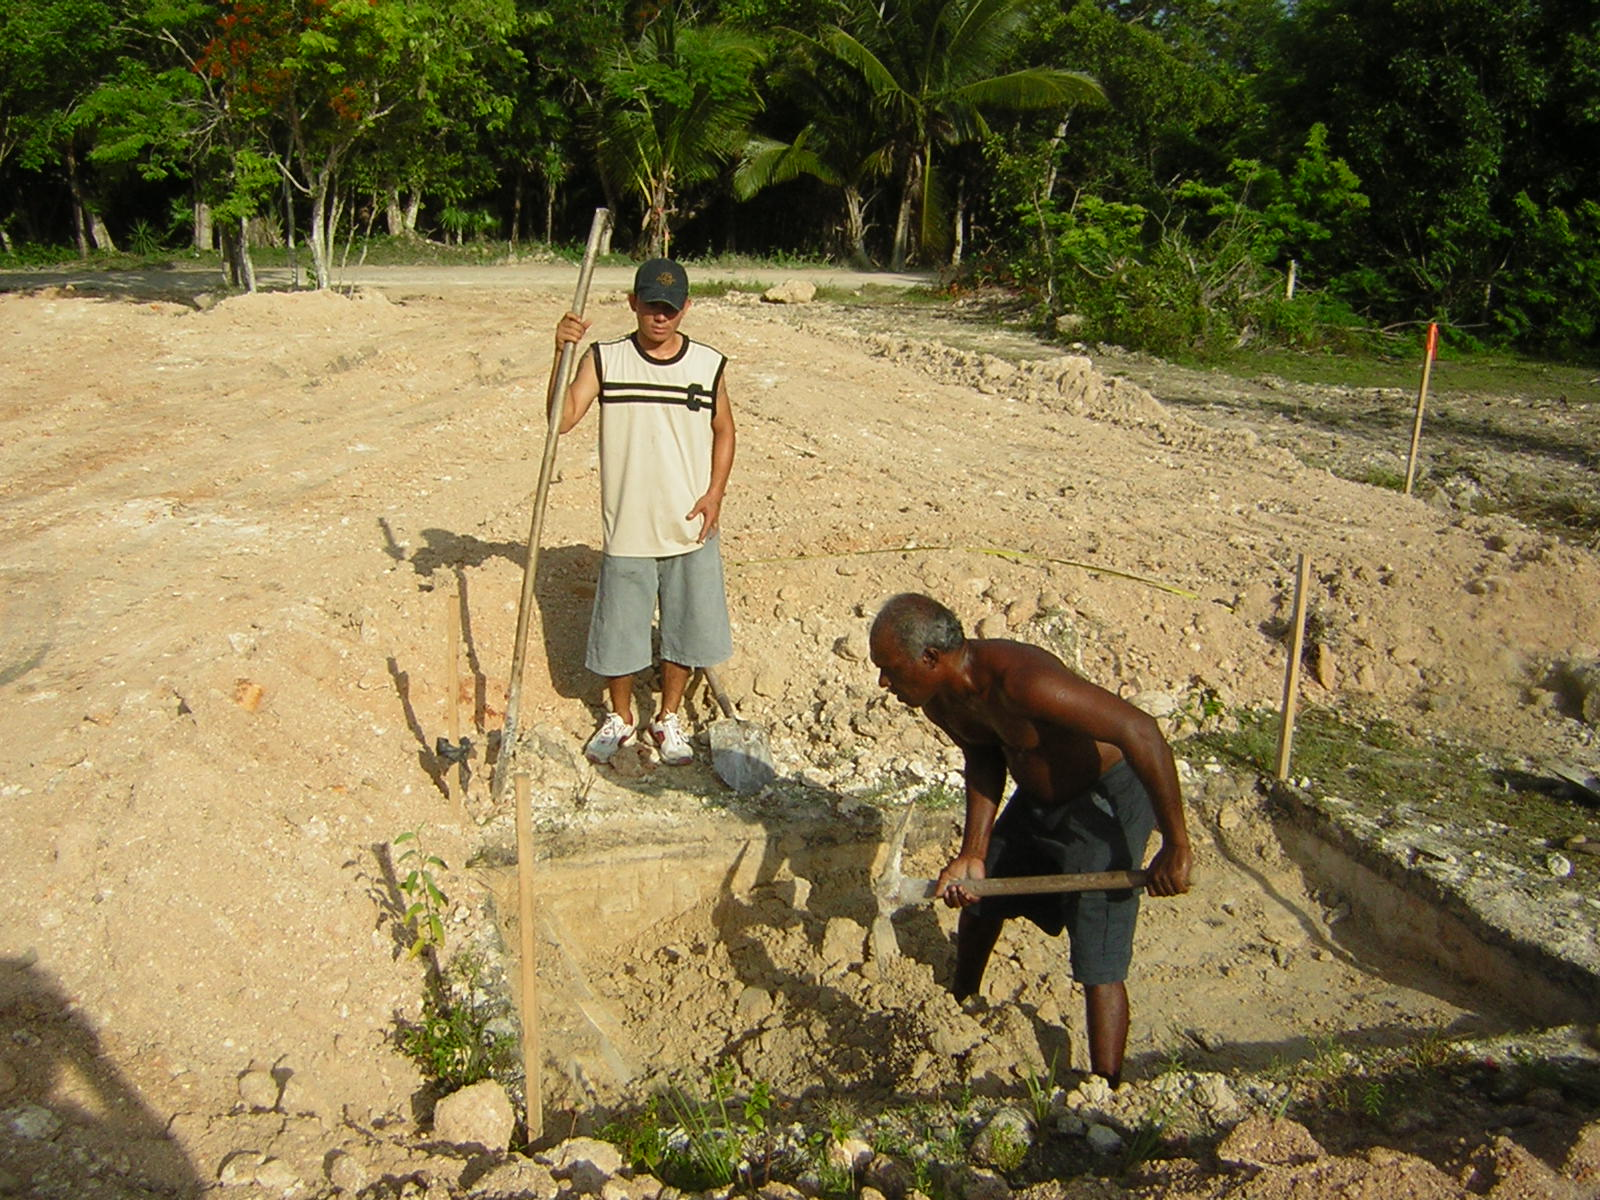 [Louis+and+Raymond+Working+on+the+Pit+8-9-2007+6-51-56+AM+1600x1200.JPG]